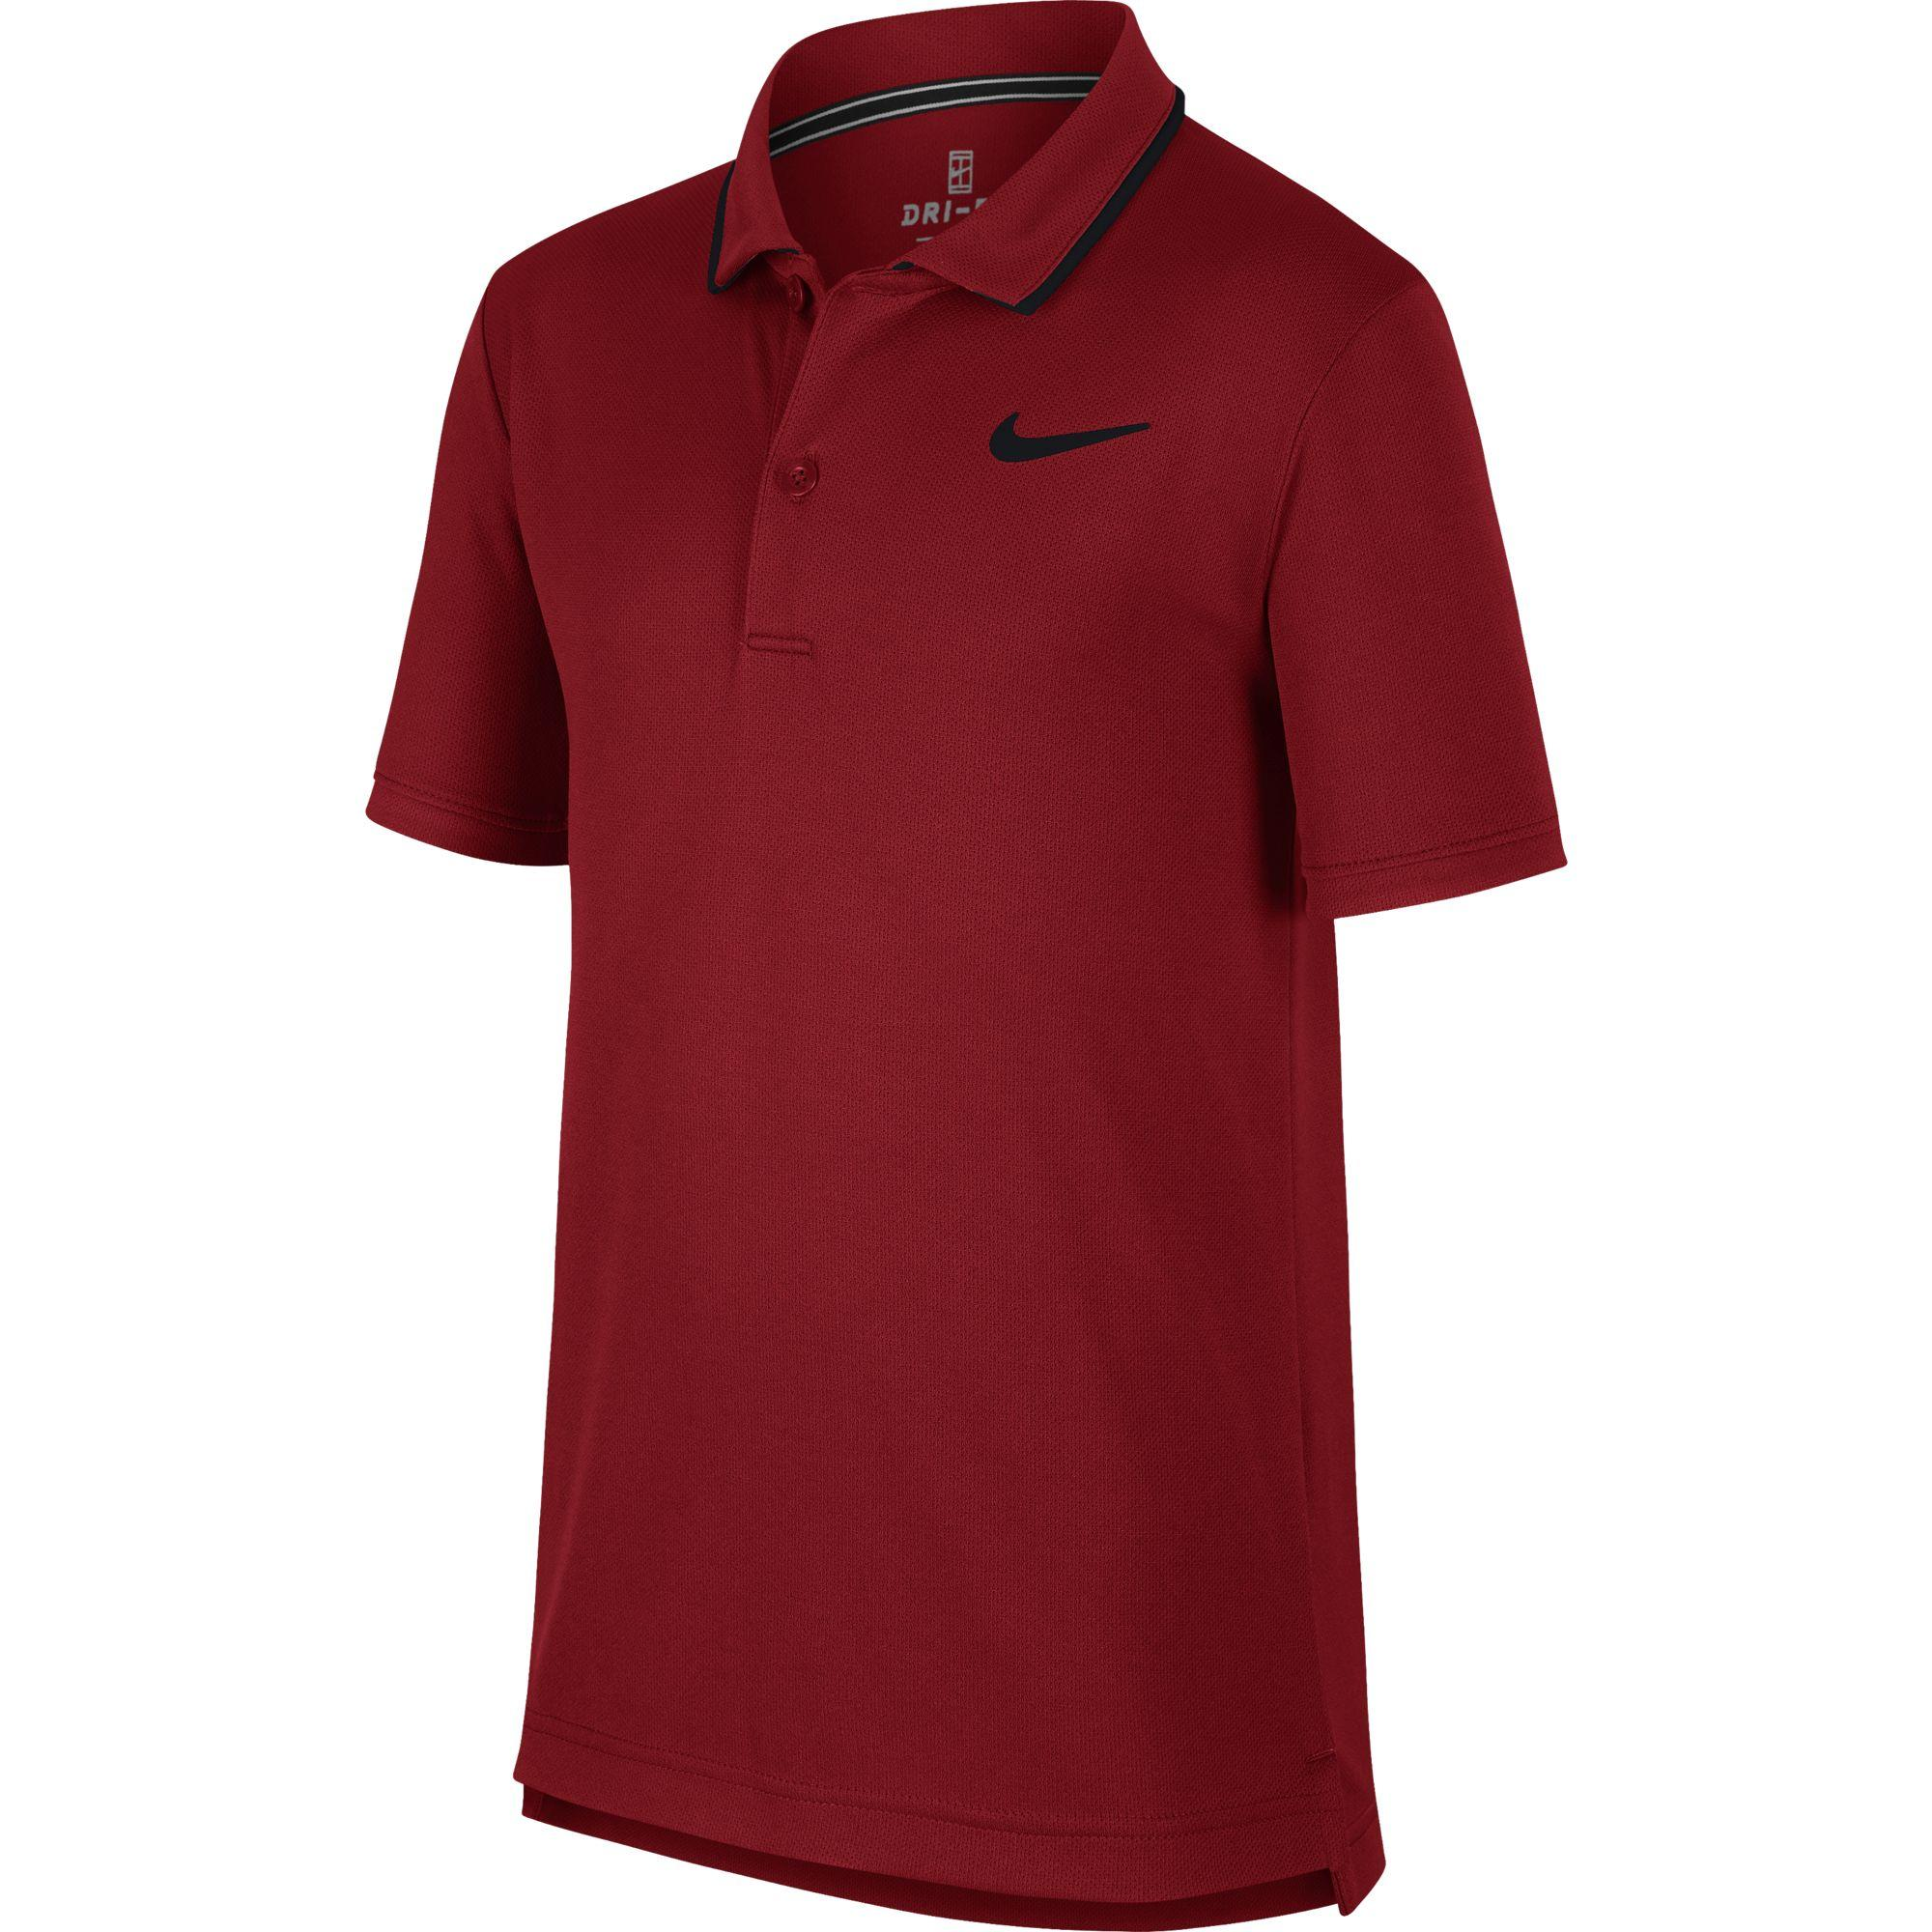 0dfdf625 Nike Boys Dri-FIT Tennis Polo - Team Crimson/Black - Tennisnuts.com